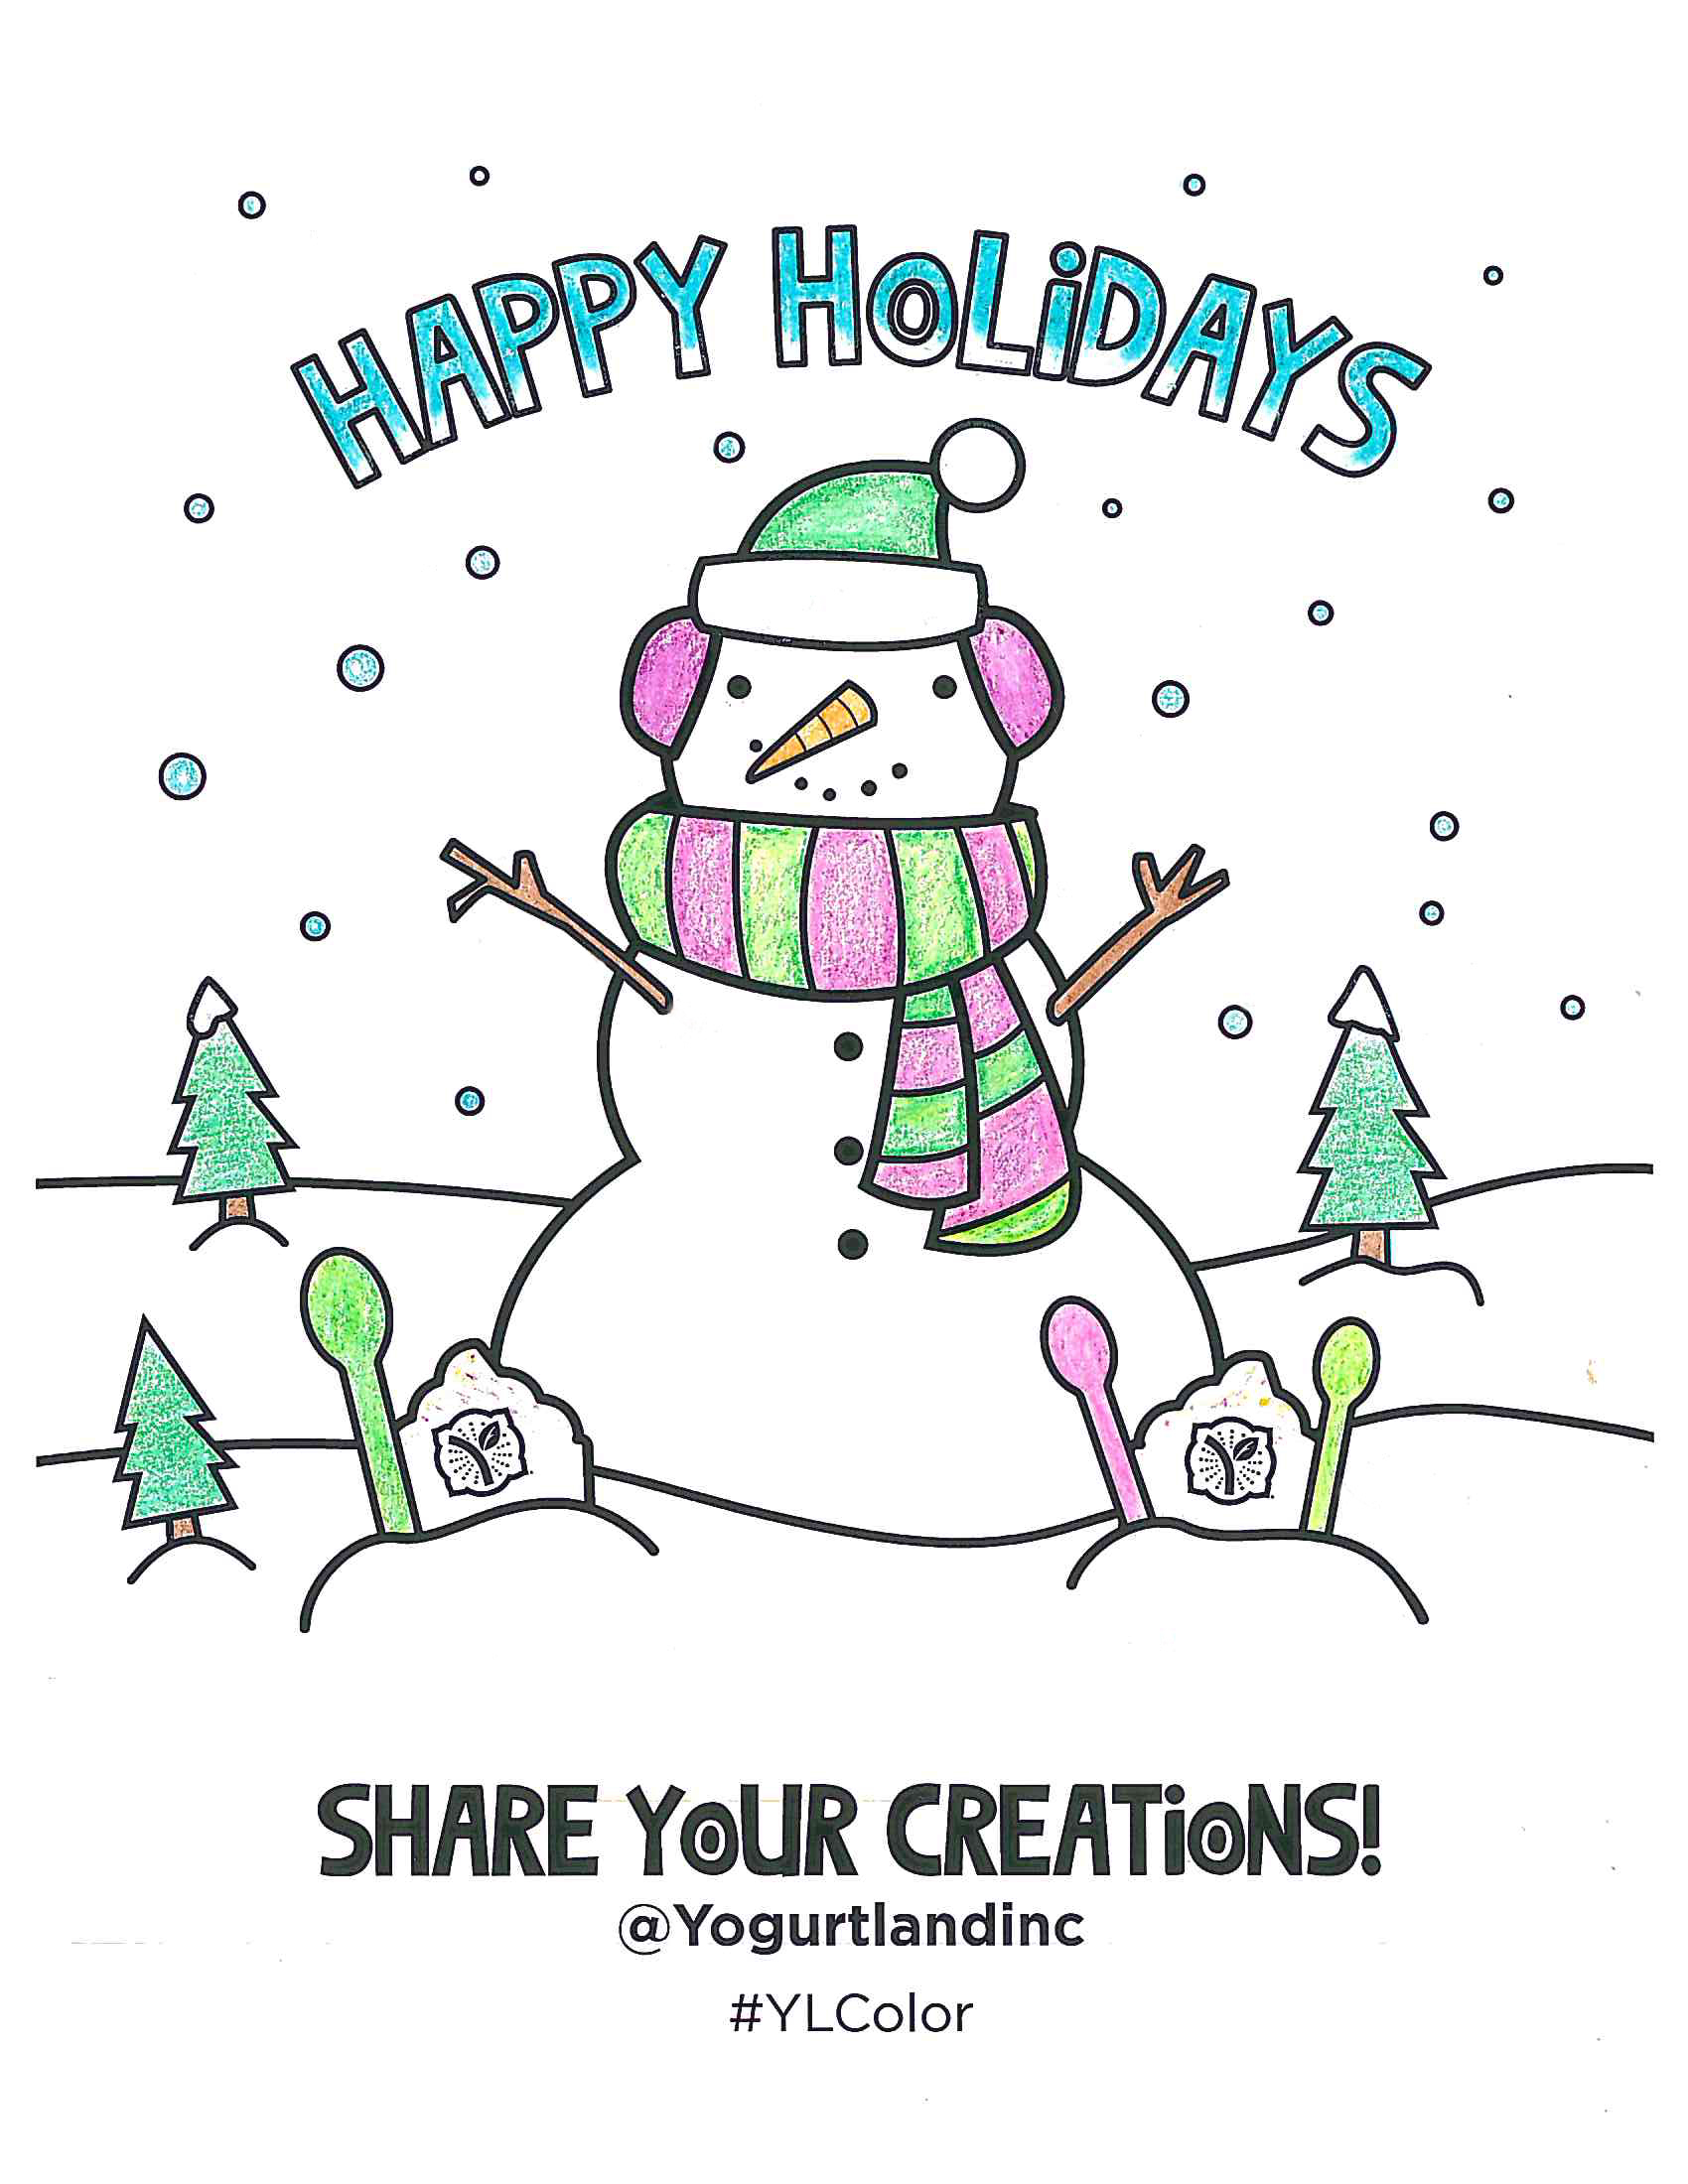 Celebrate The Holiday Season With Our Free Downloadable Coloring Page Bring Your Winter Wonderland To Life As You Gather Friends And Family Or